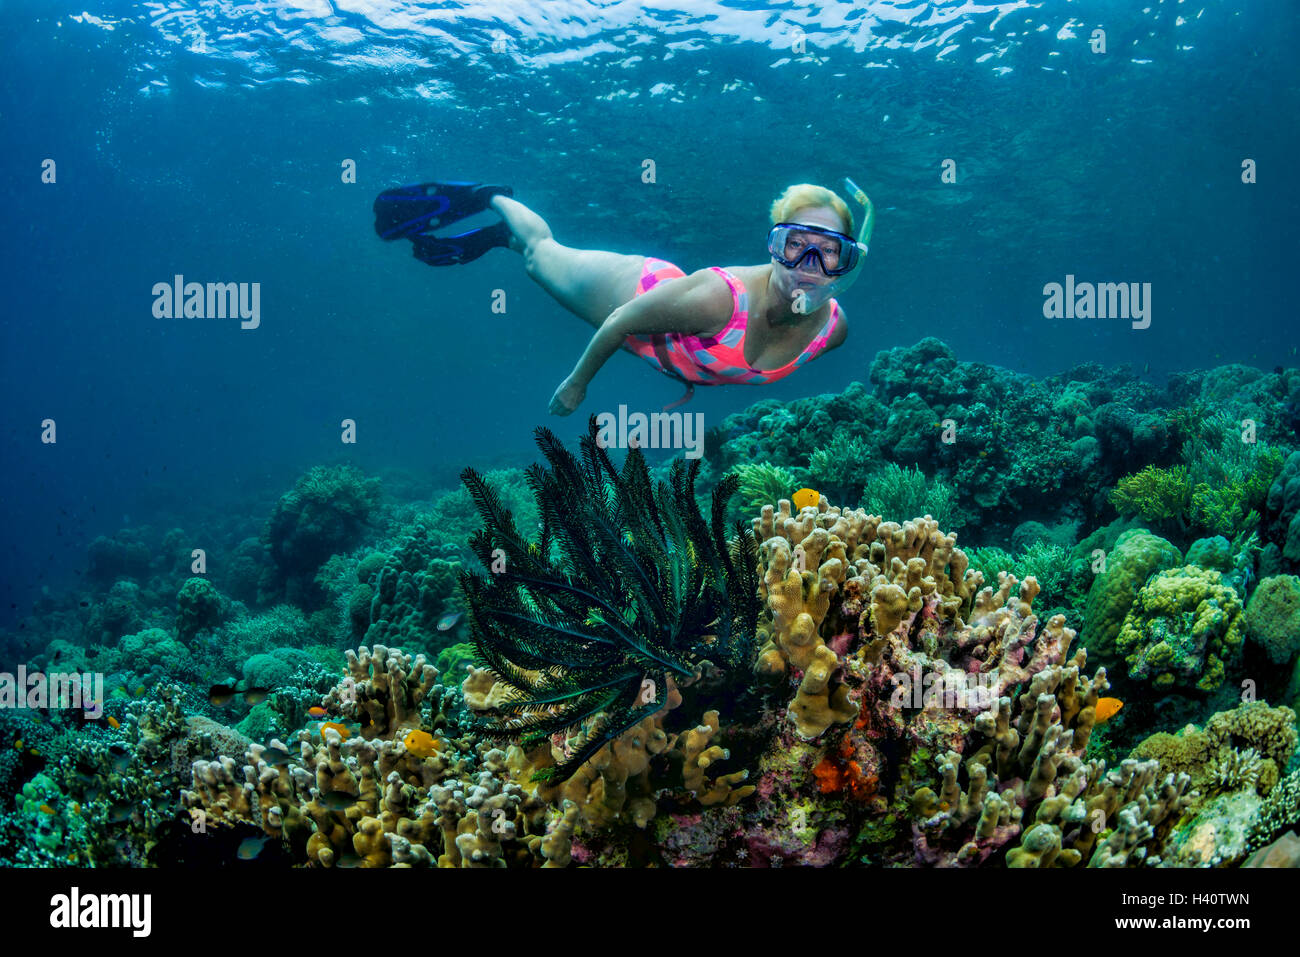 Female snorkel diver exploring tropical coral reef - Stock Image